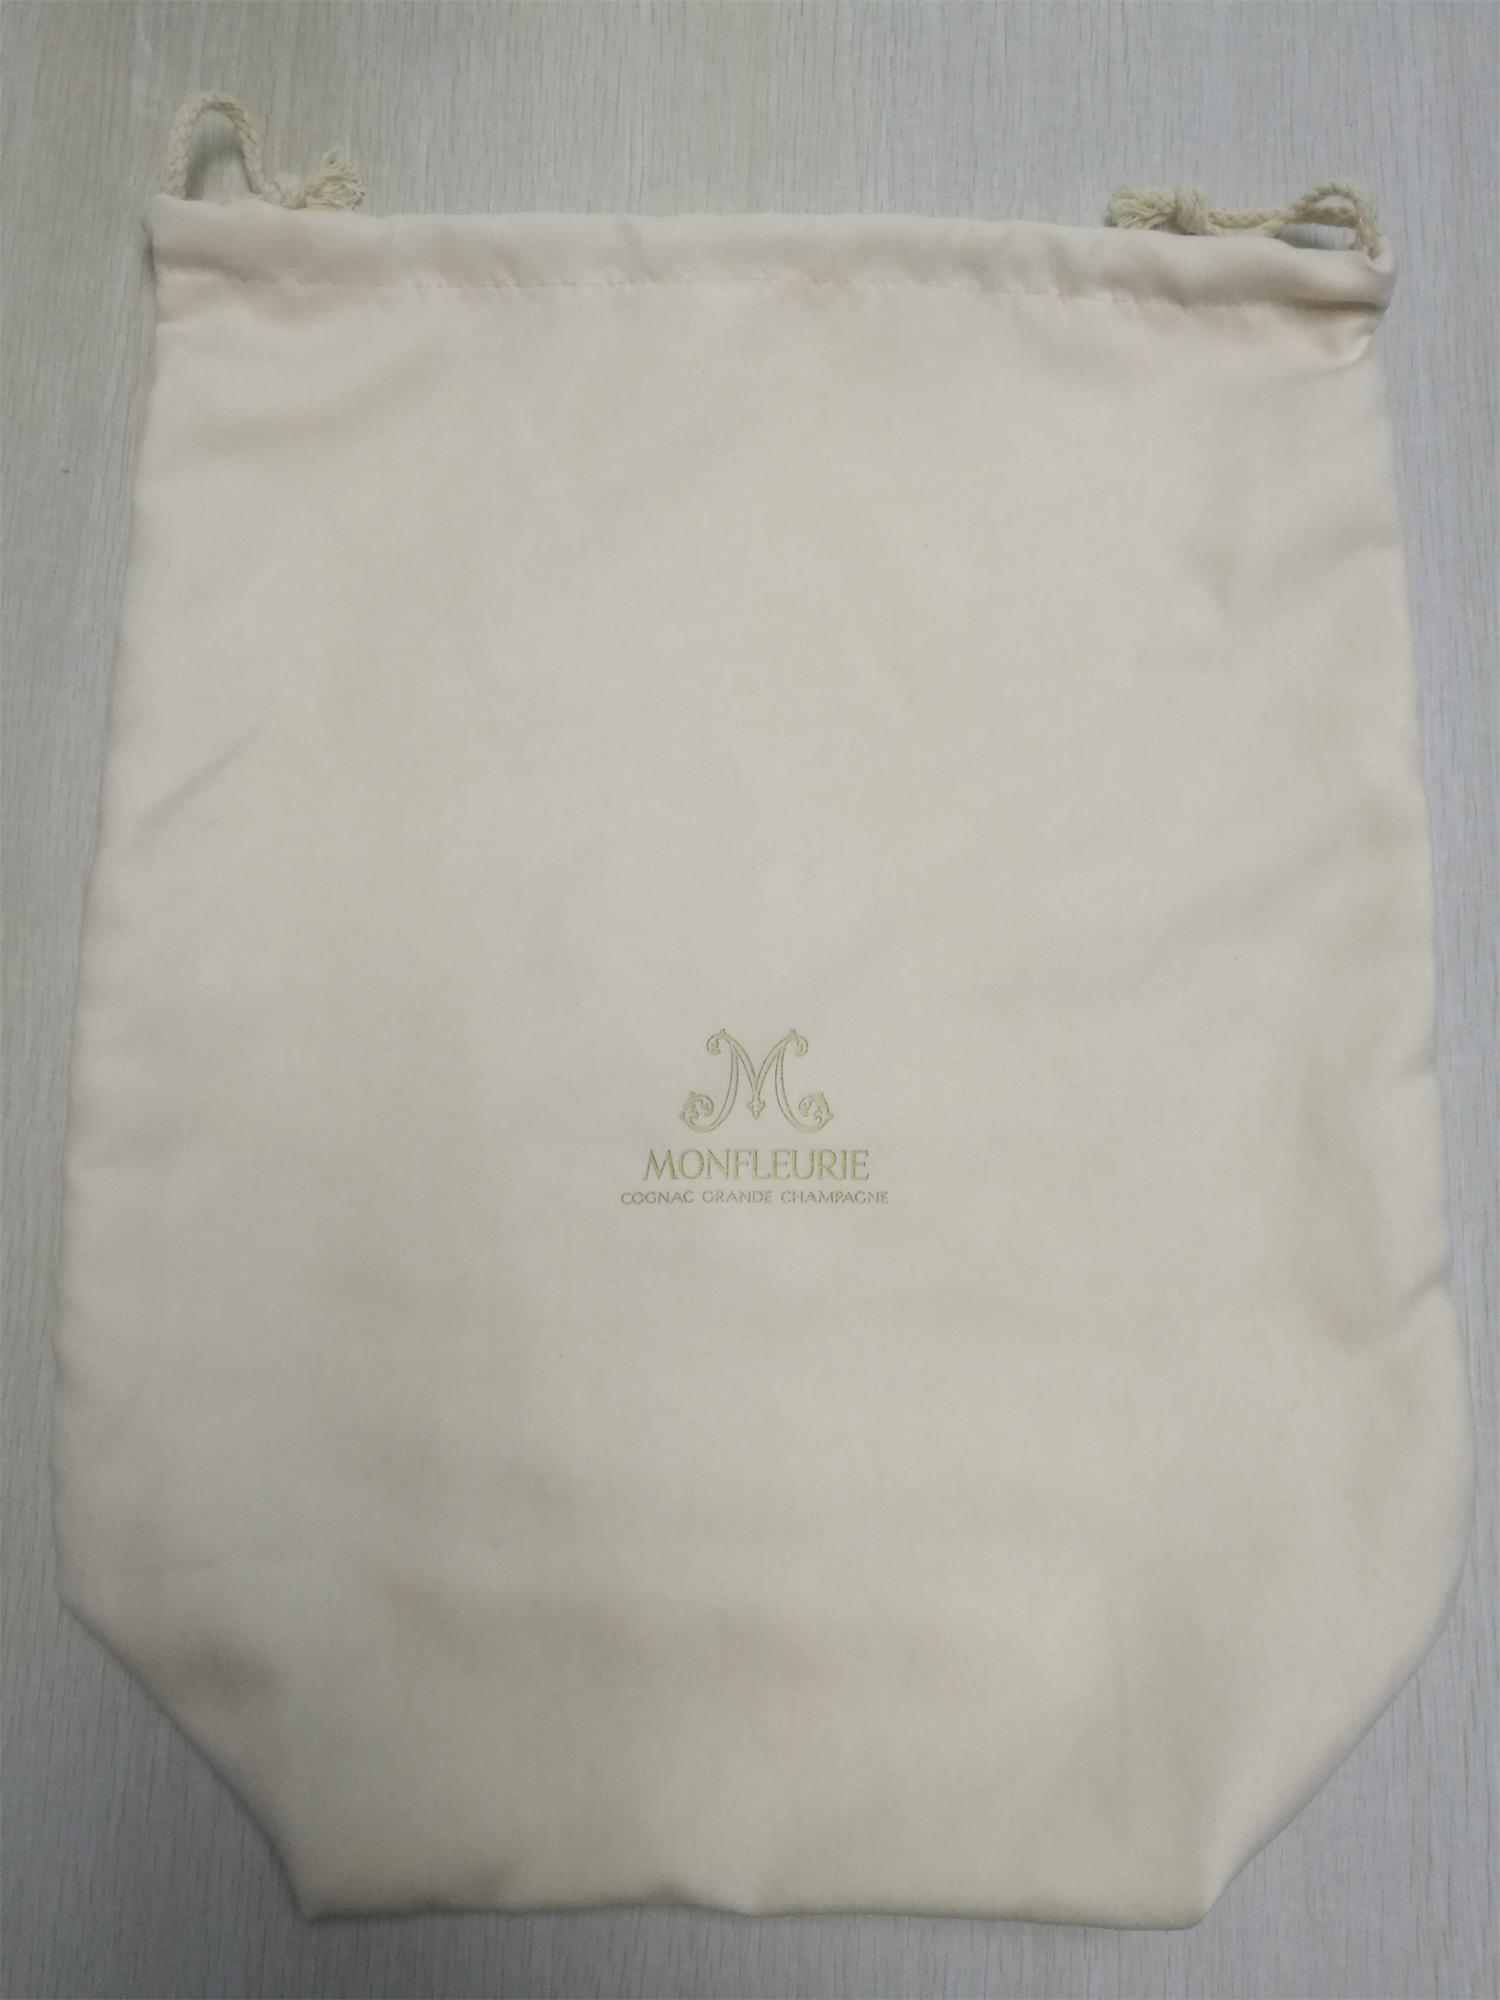 Beige faux suede bag with custom logo for promotional gifts packaging